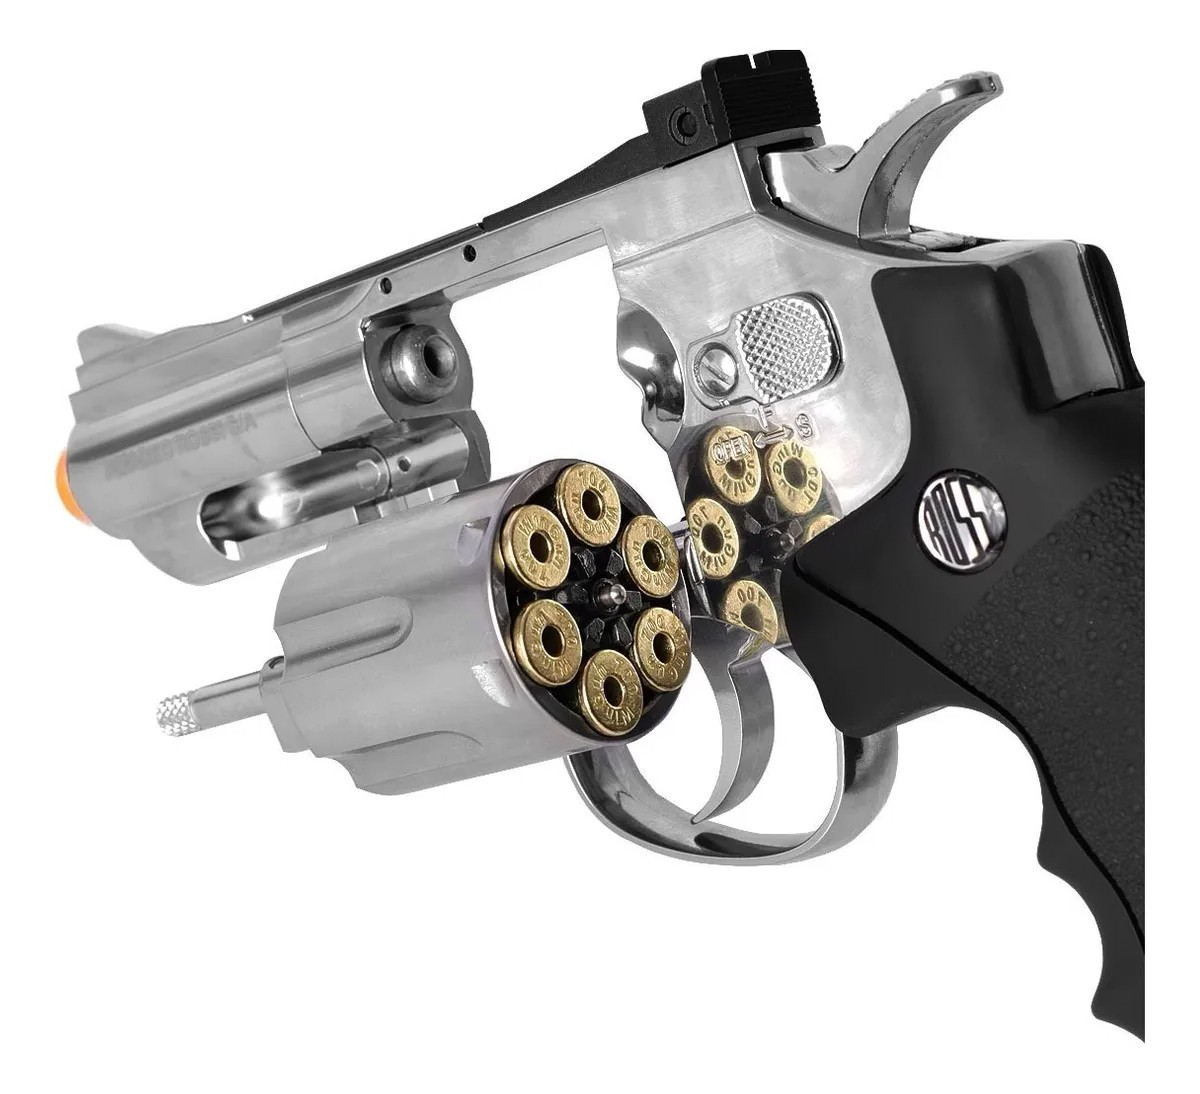 Revolver Pressão Rossi 708 Full Metal Co2 Cromado Airgun 4,5 K3